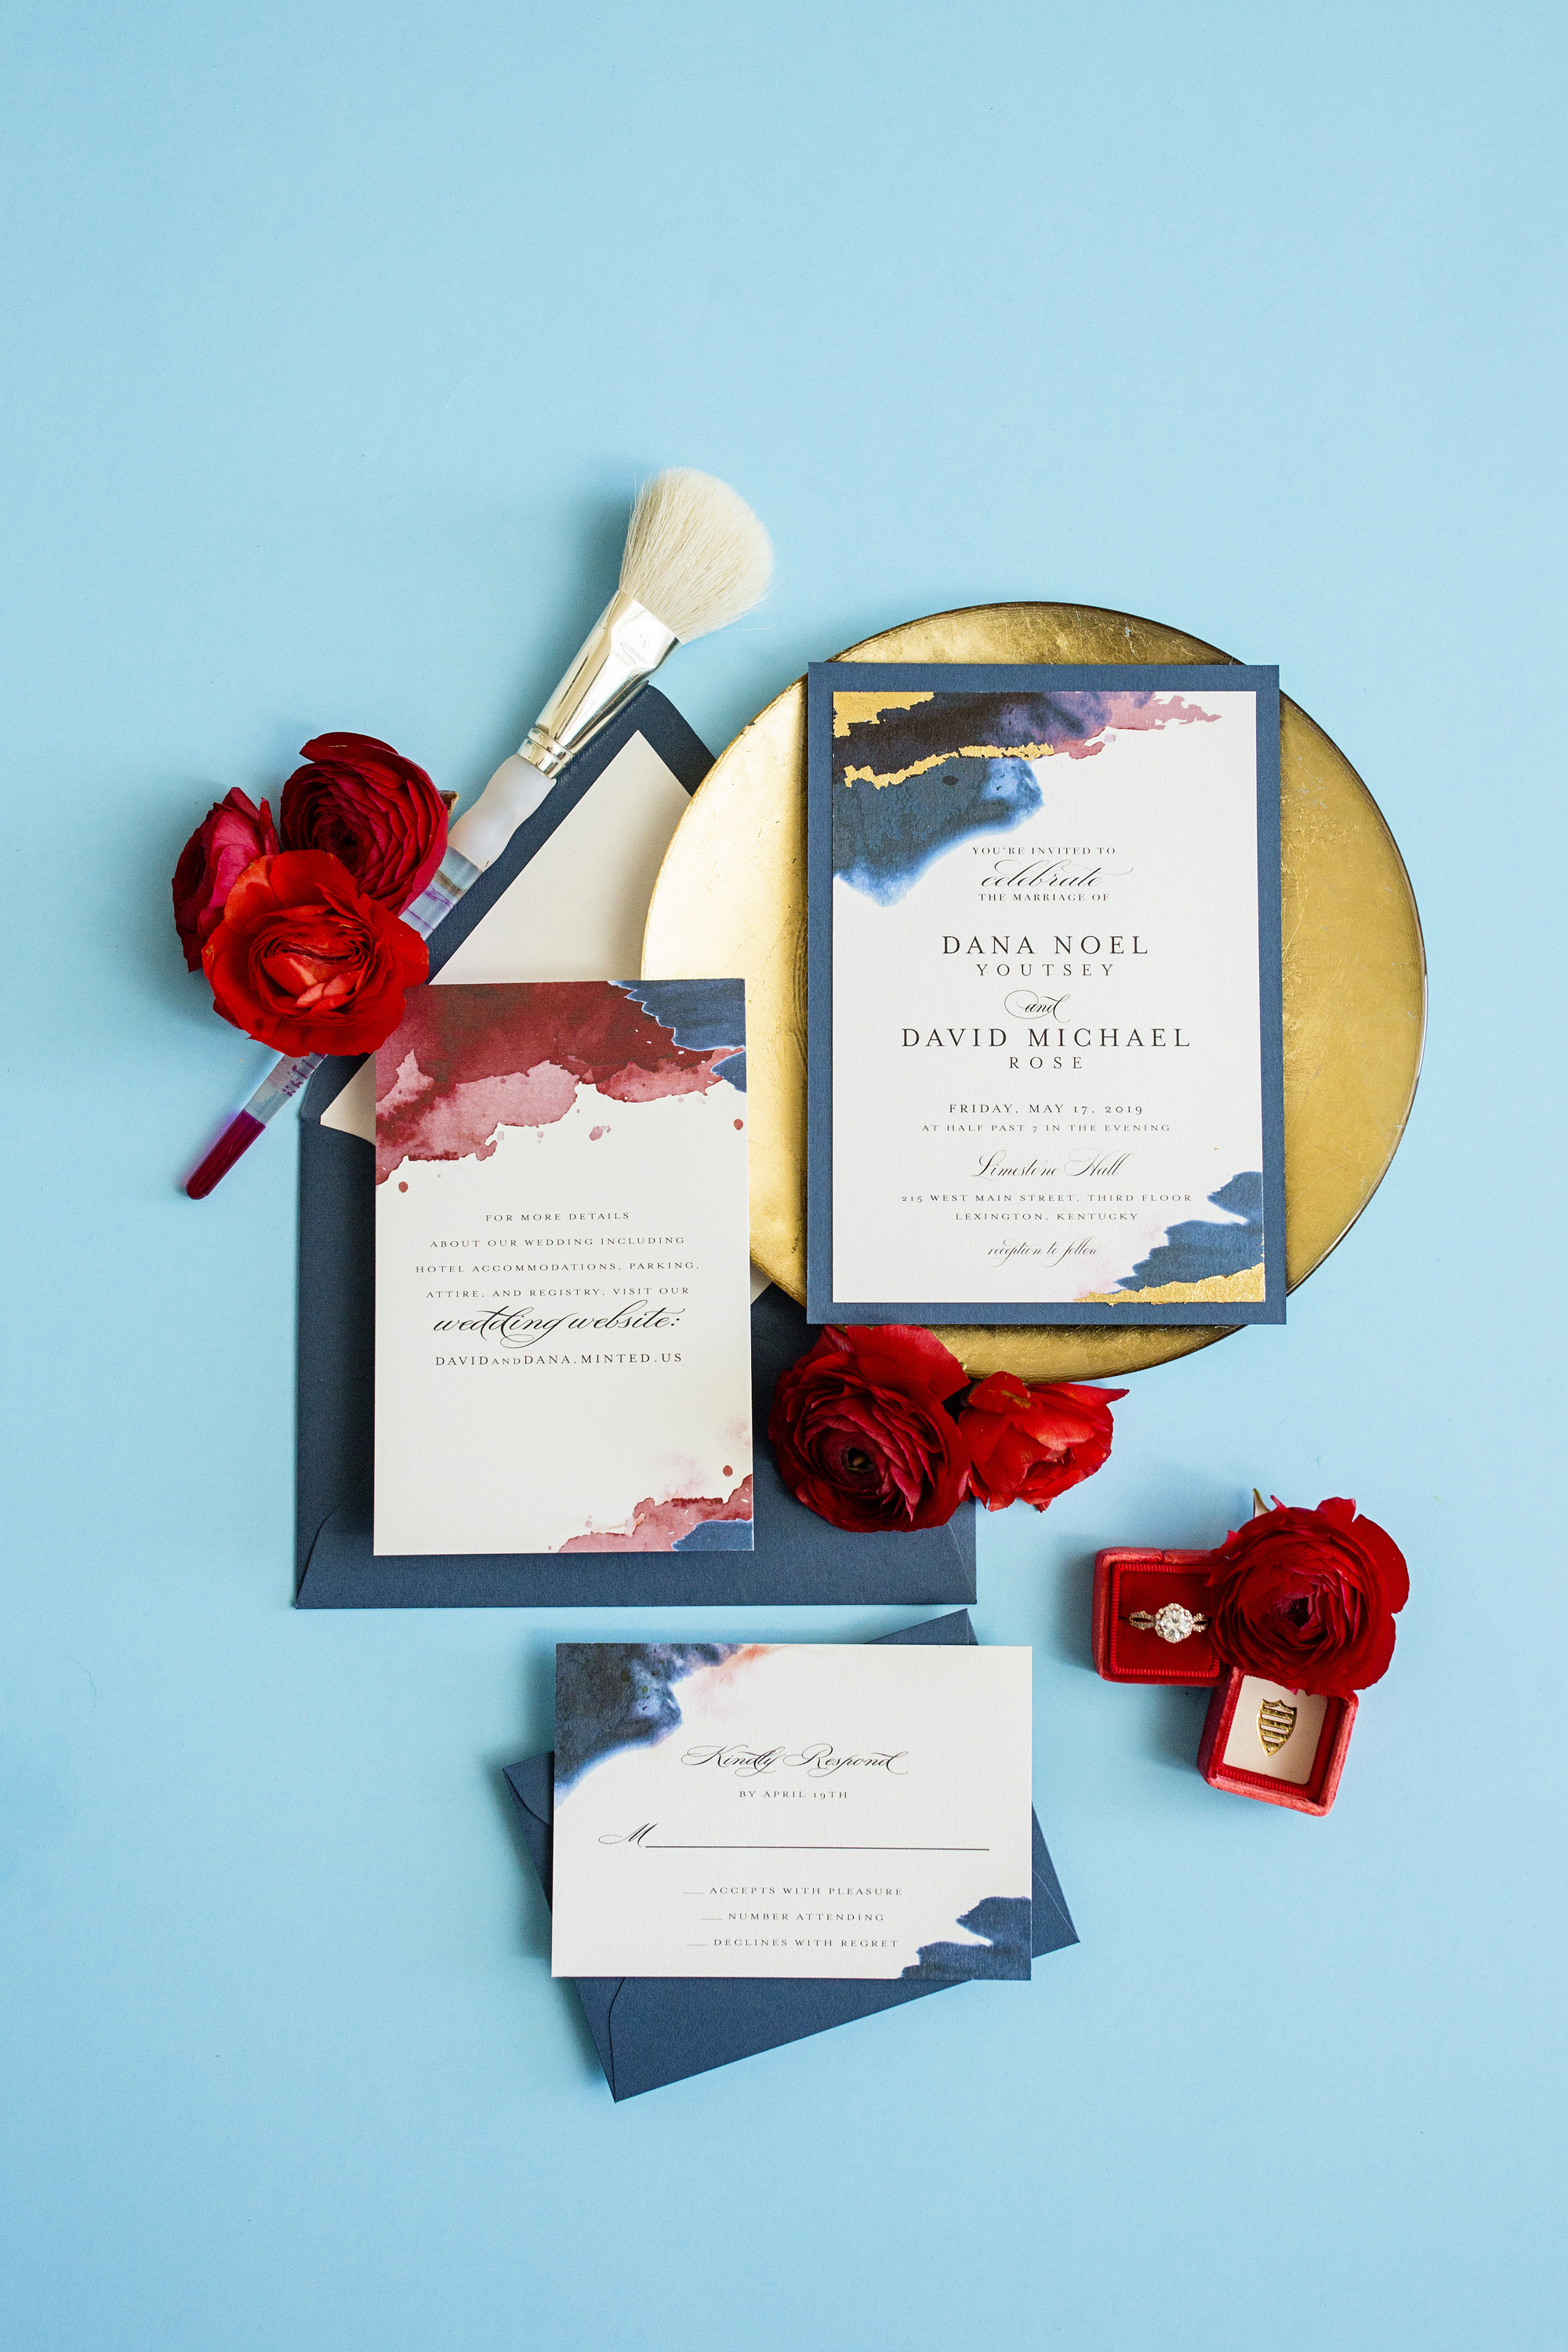 Seriously_Sabrina_Photography_Commercial_Simply_Done_Invites_2019_March_002